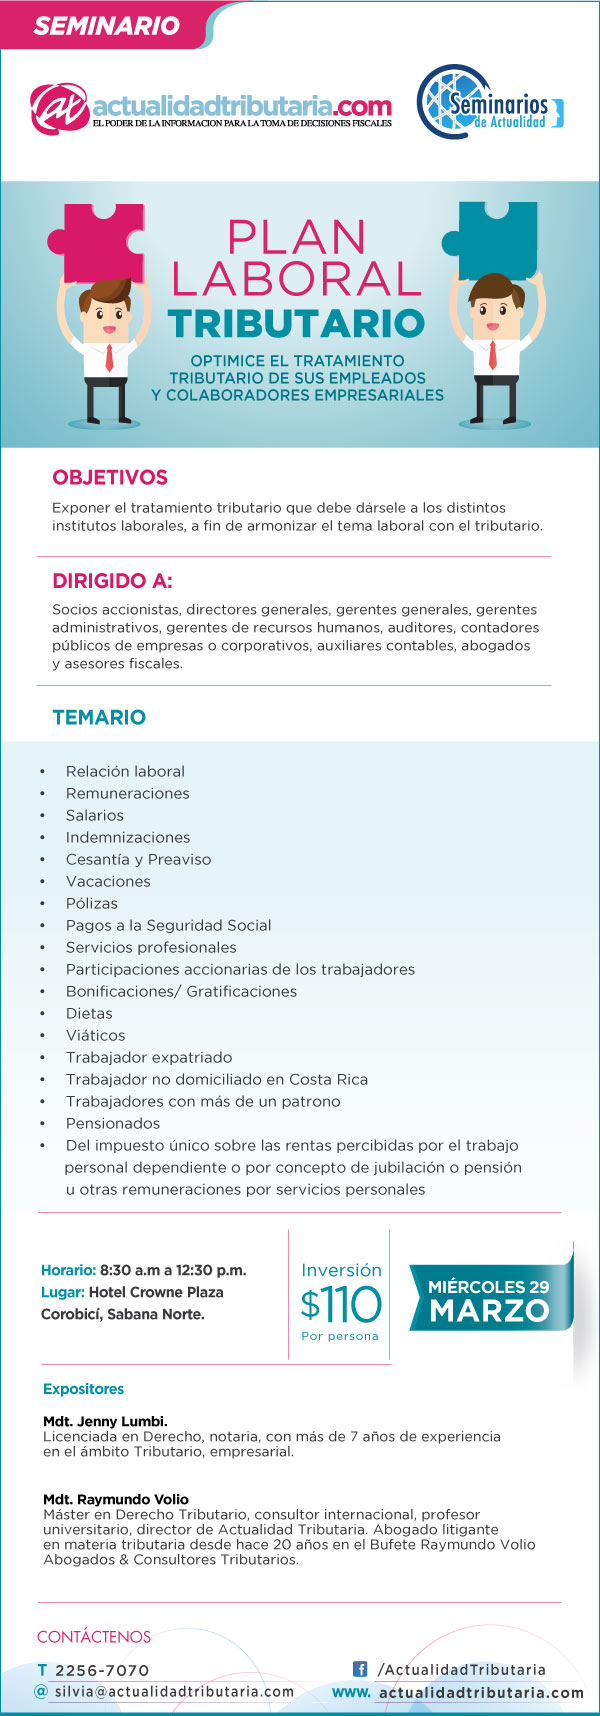 Plan Laboral Tributario